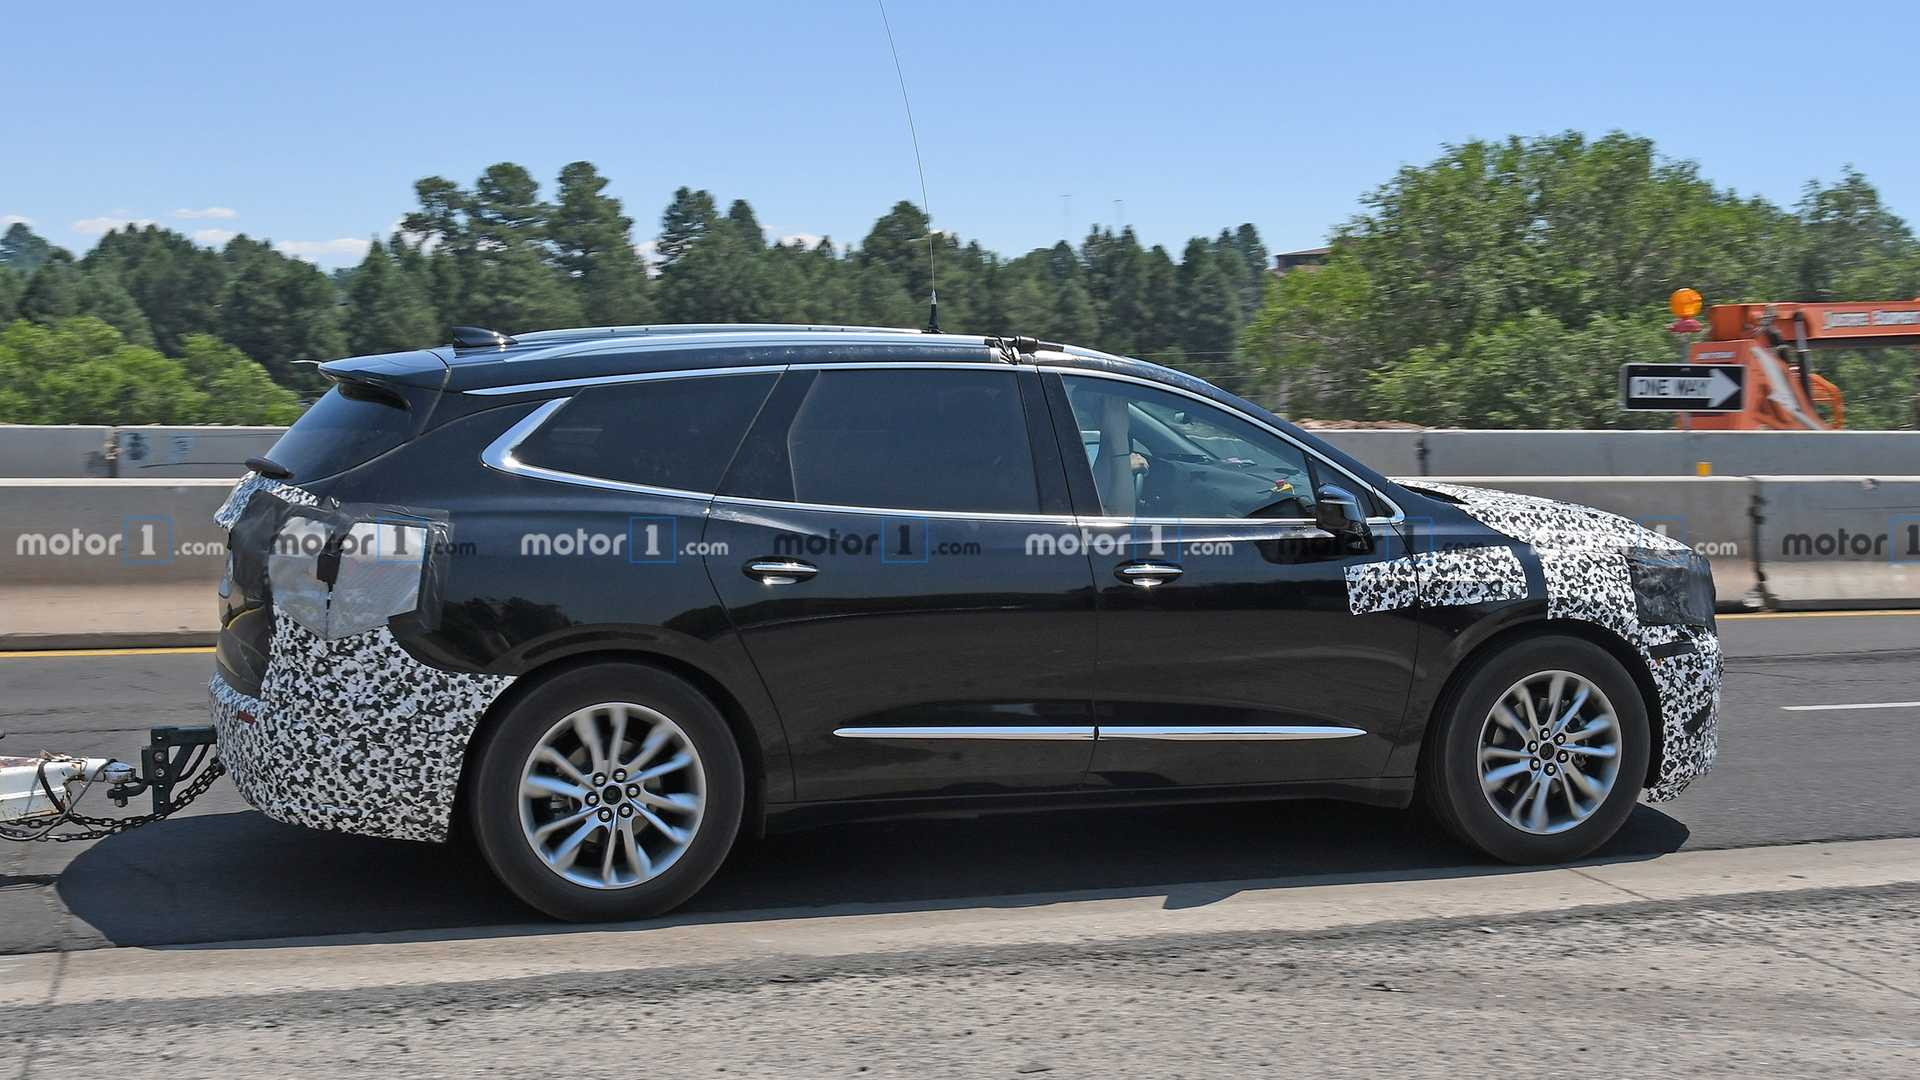 2021 Buick Enclave Spied For The First Time CarsRadars